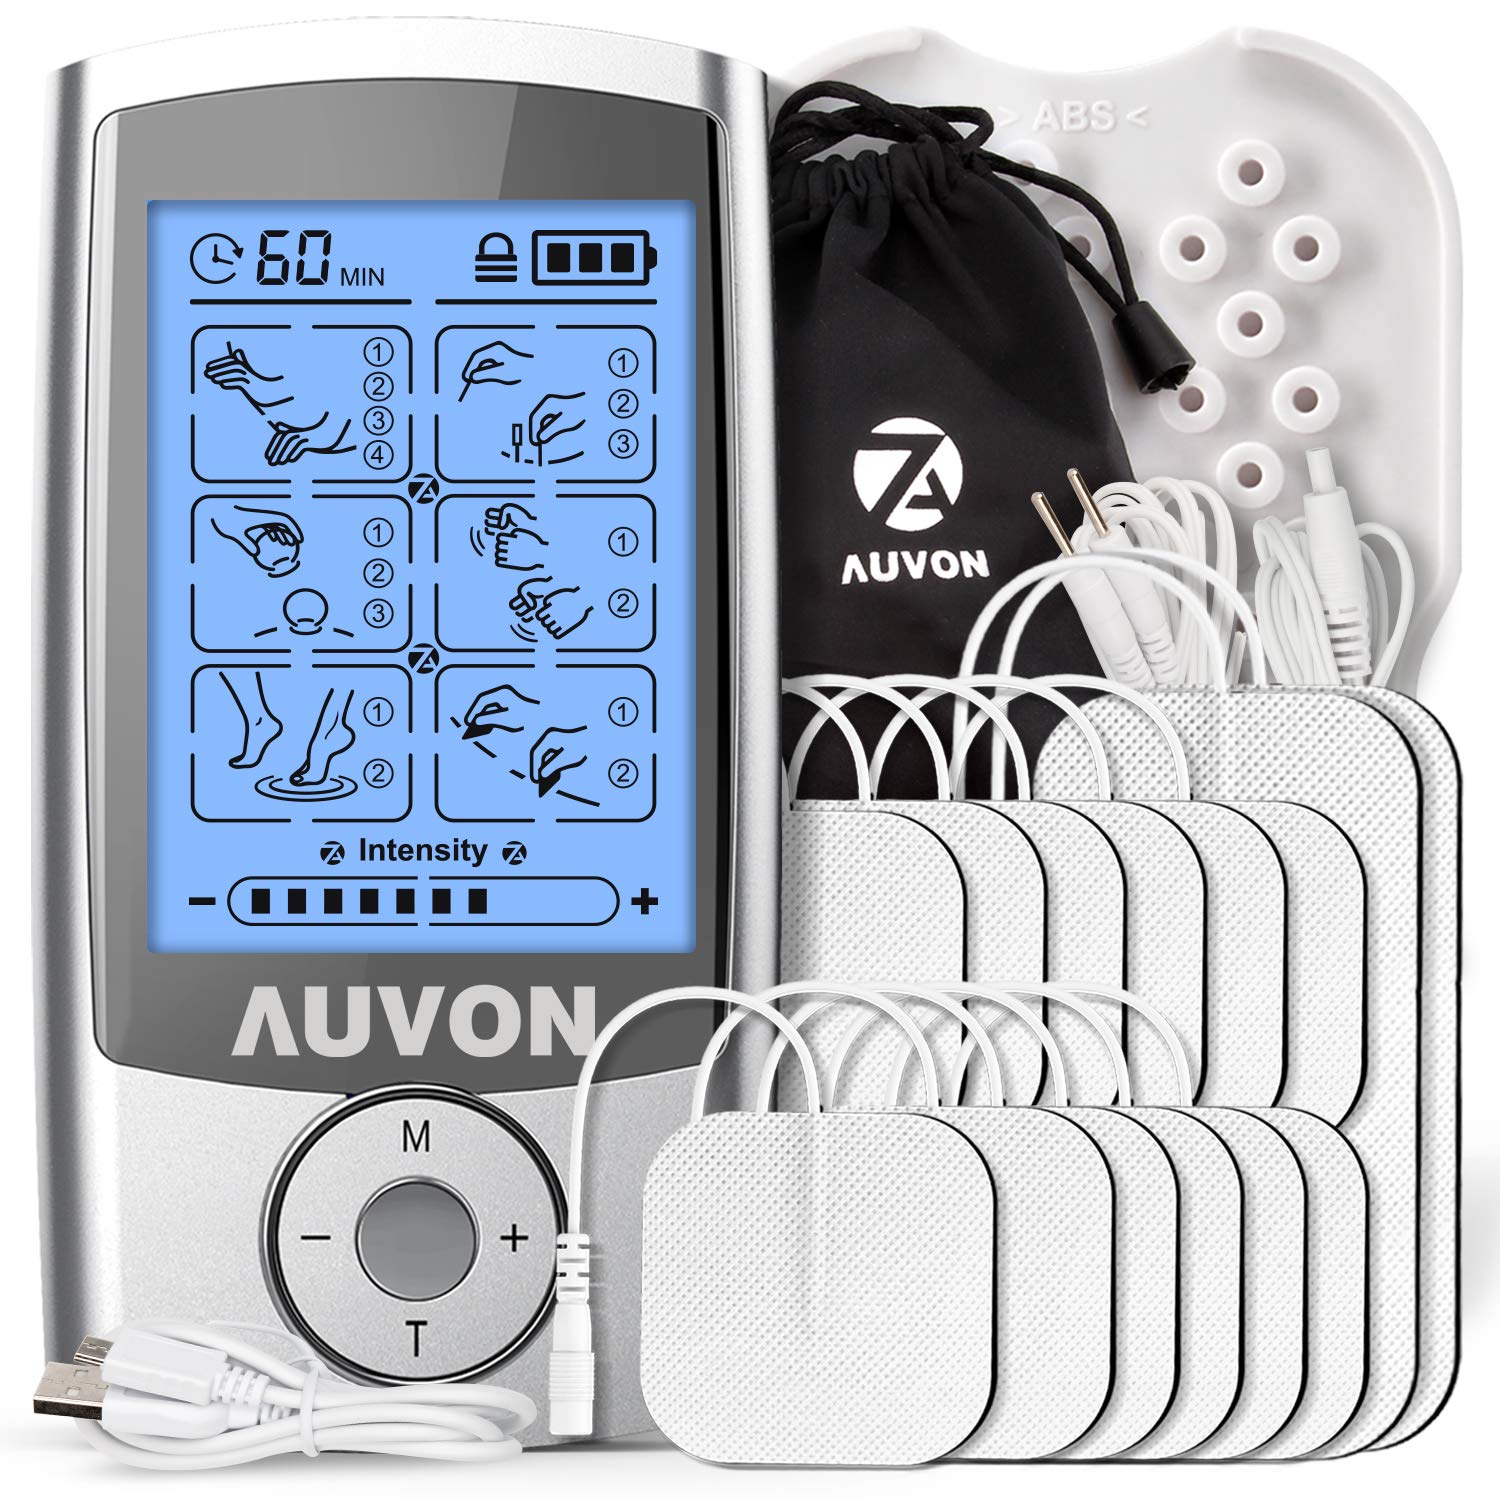 AUVON Rechargeable TENS Unit Muscle Stimulator (Famliy Pack), 3rd Gen TENS Machine with 16 Preset Modes, Pads Holder, 12pcs 2''x2'' and 2pcs 2''x4'' Electrode Pads (Gel Made in USA) by AUVON